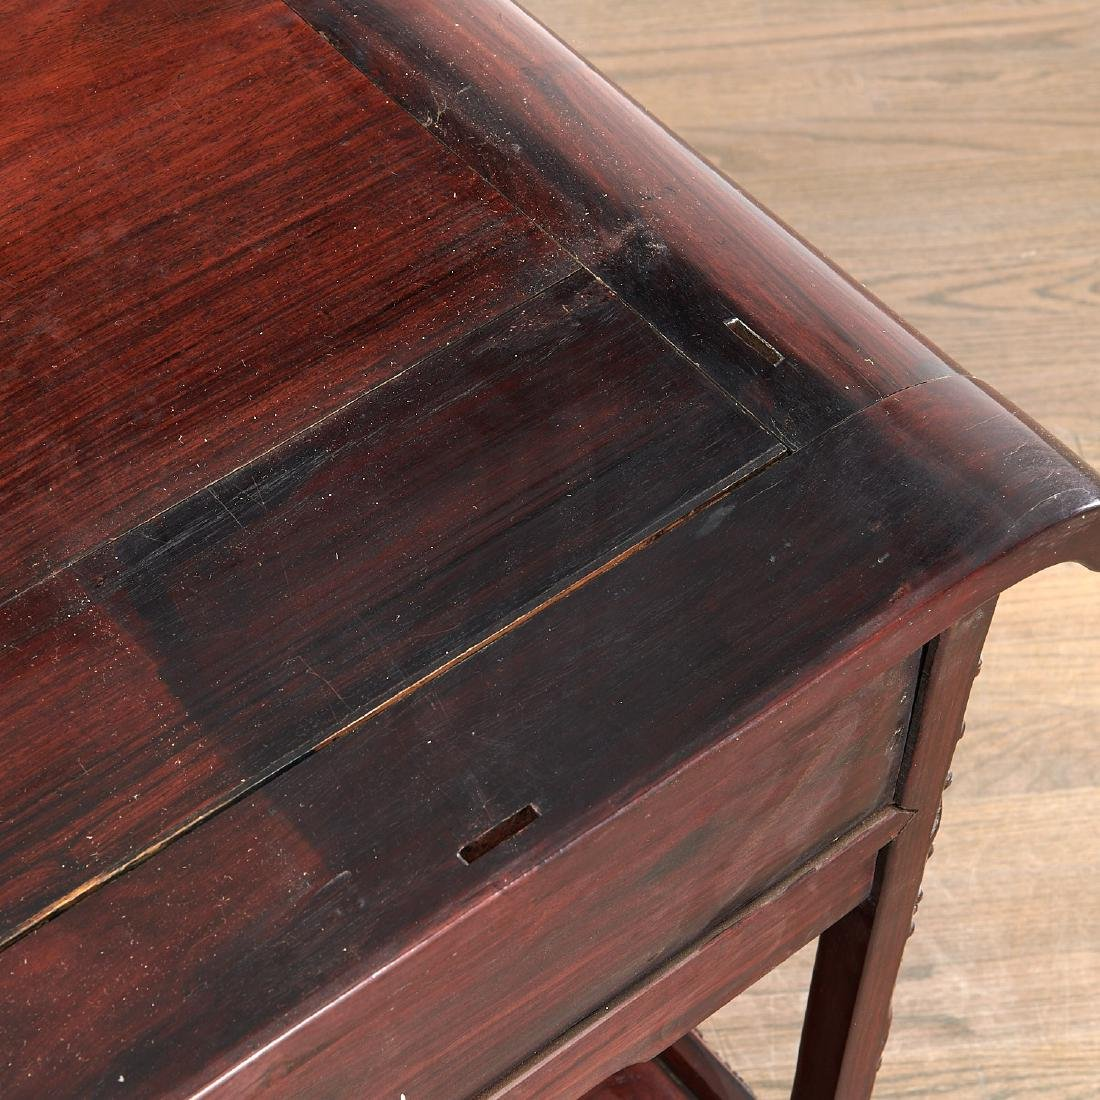 Fine Chinese Export carved hardwood two-part desk - 9